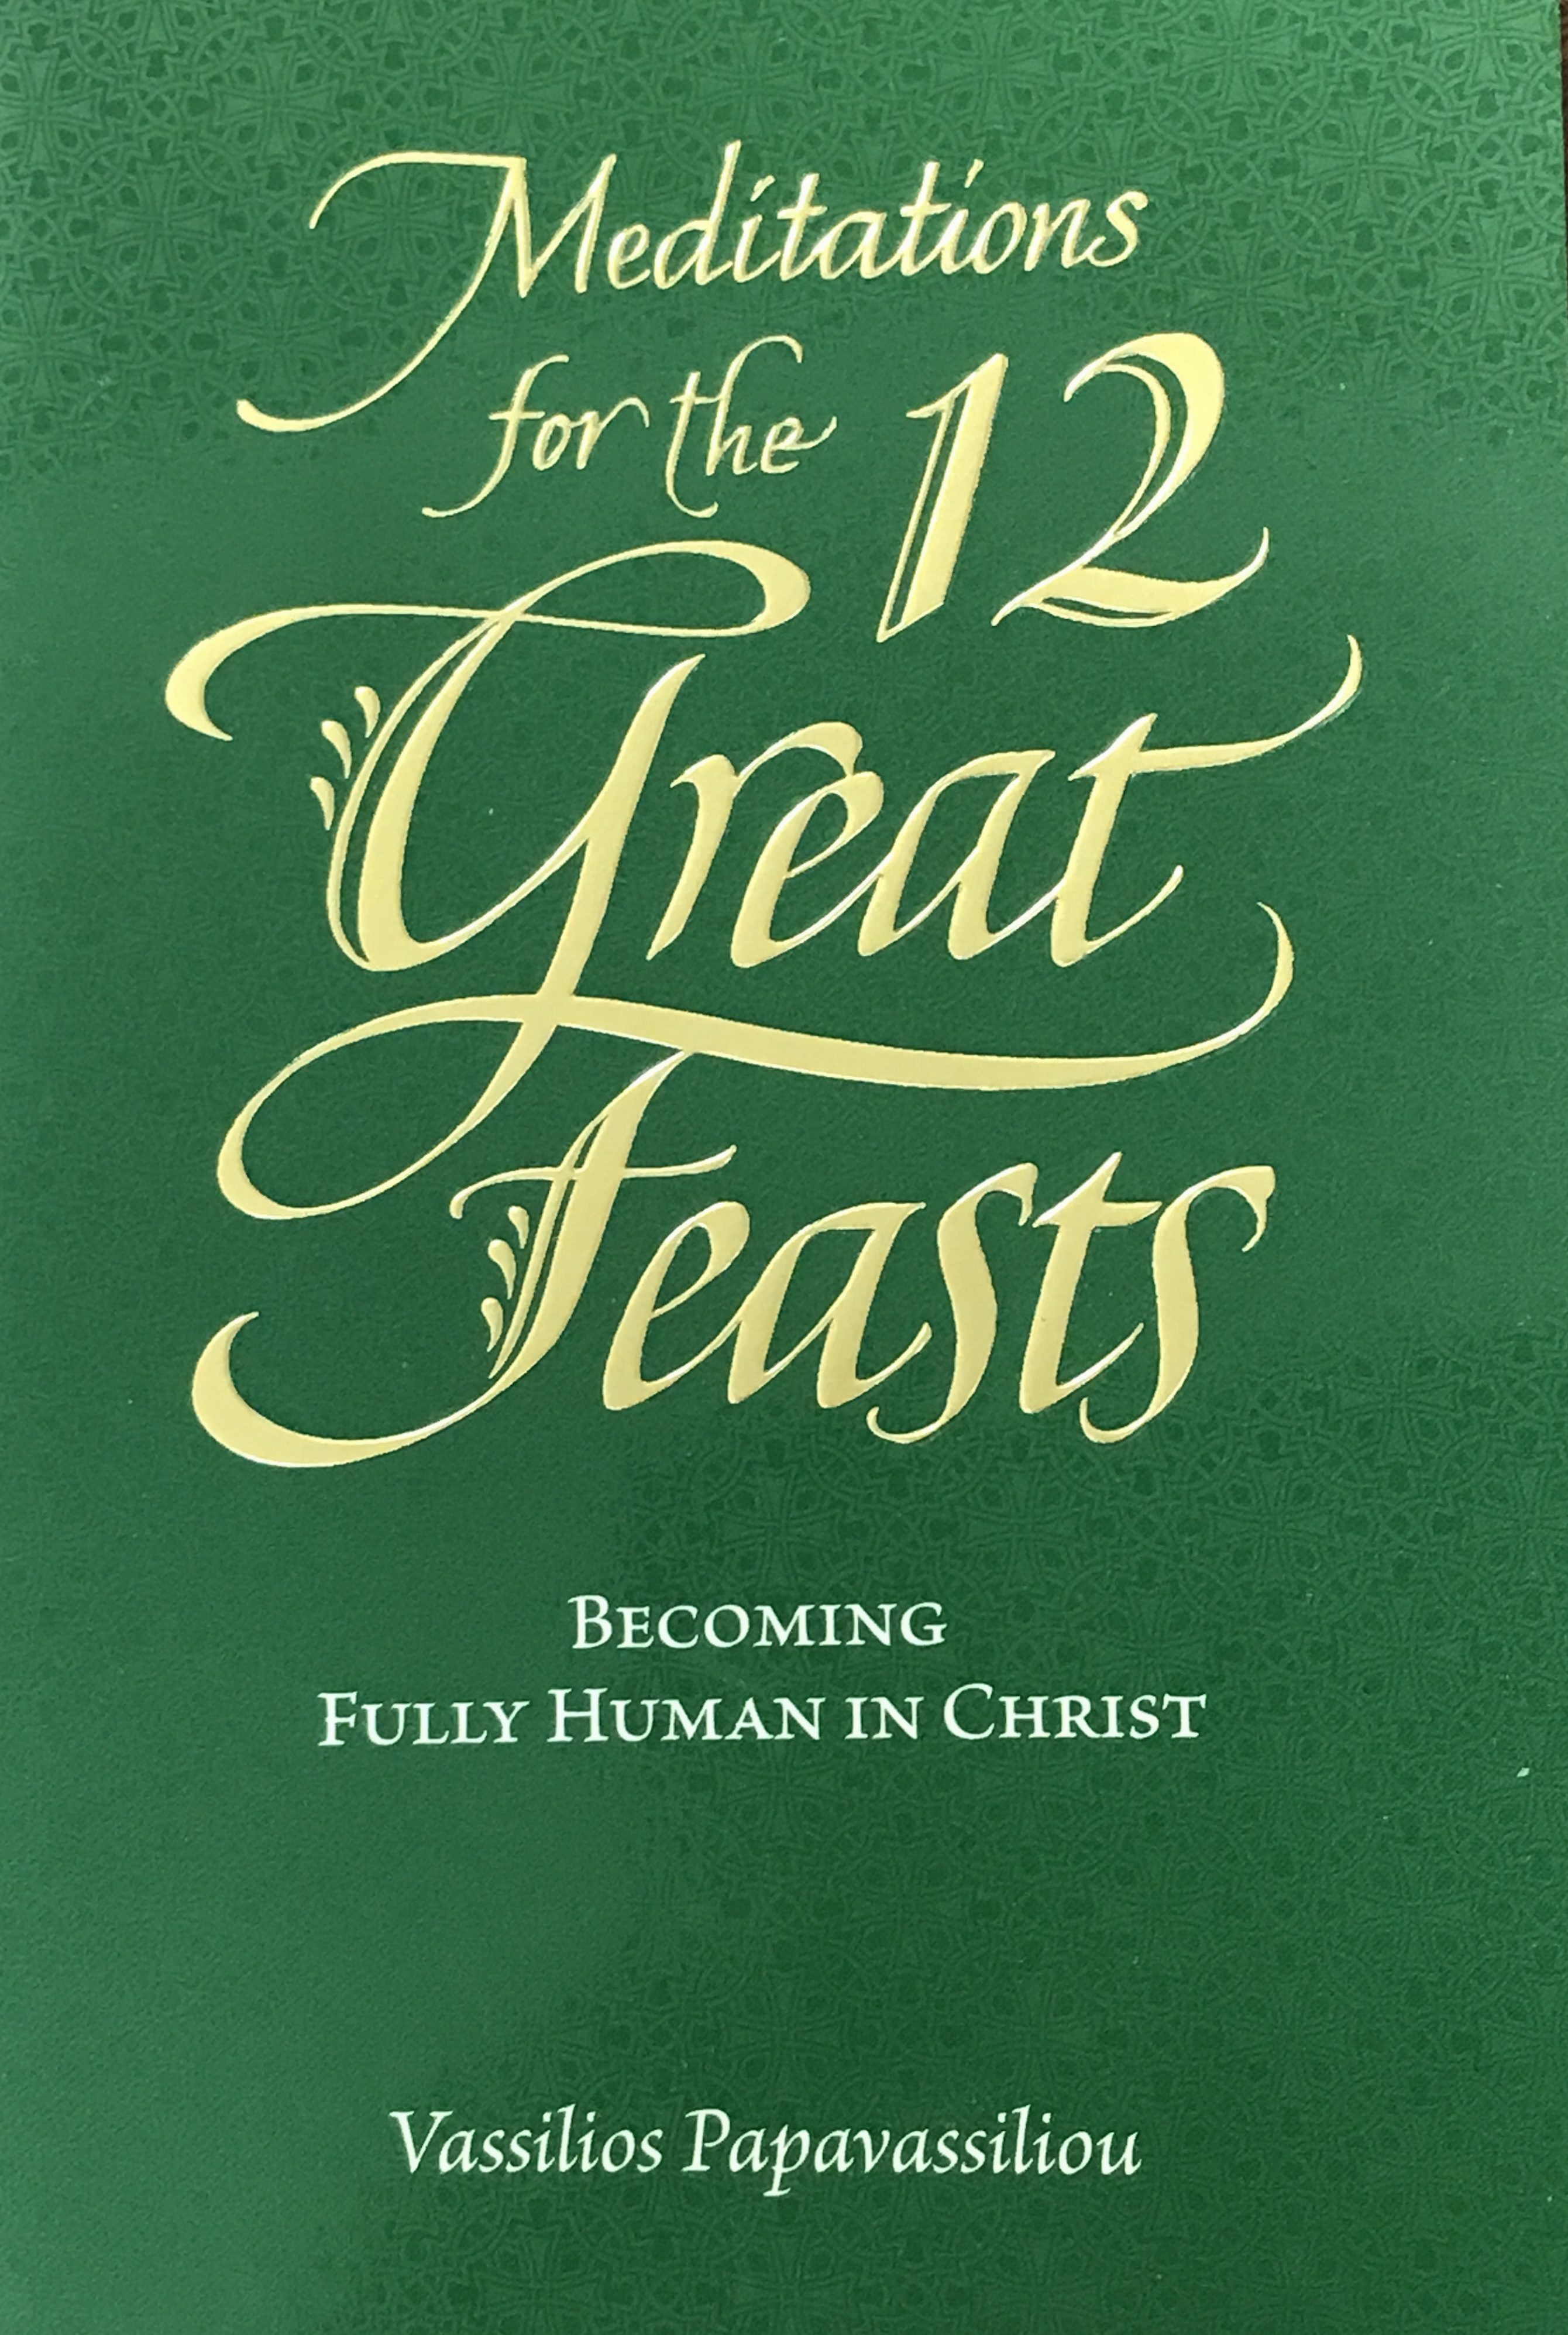 Meditations for the 12 Great Feasts: Becoming Human in Christ